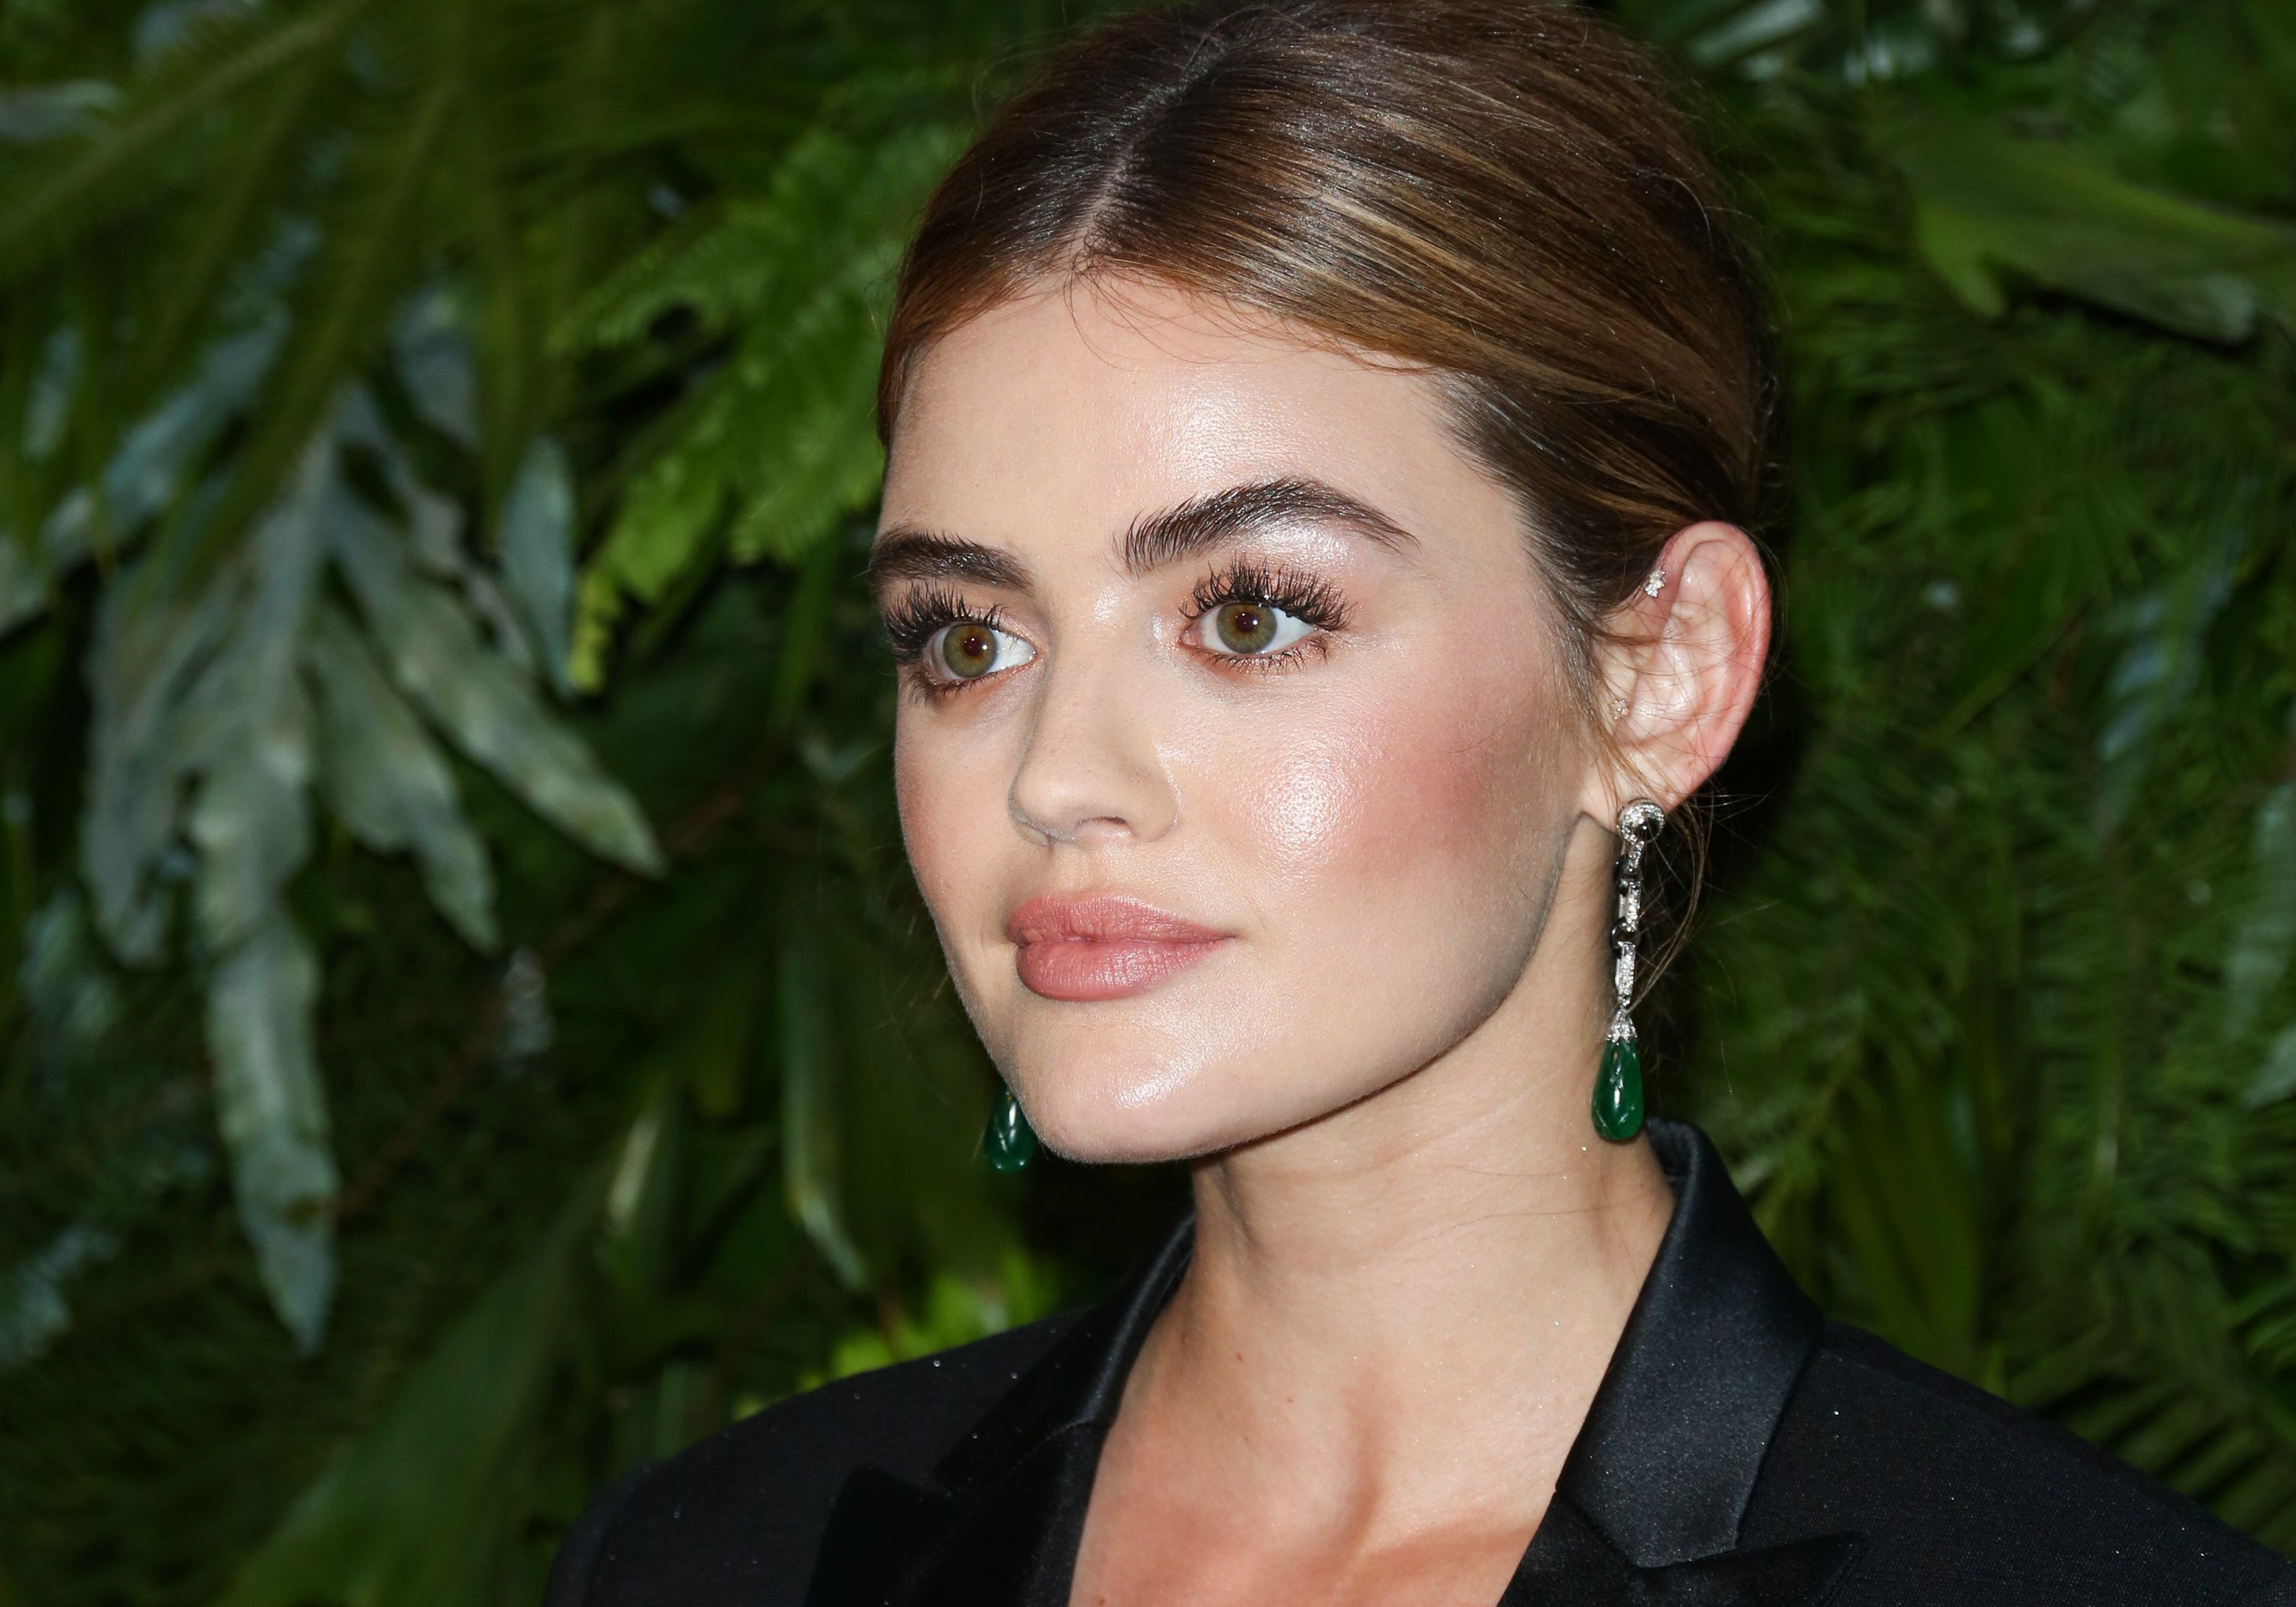 LOS ANGELES, CA - JUNE 12:  Actress Lucy Hale attends the Max Mara WIF Face Of The Future event at the Chateau Marmont on June 12, 2018 in Los Angeles, California.  (Photo by Paul Archuleta/FilmMagic)